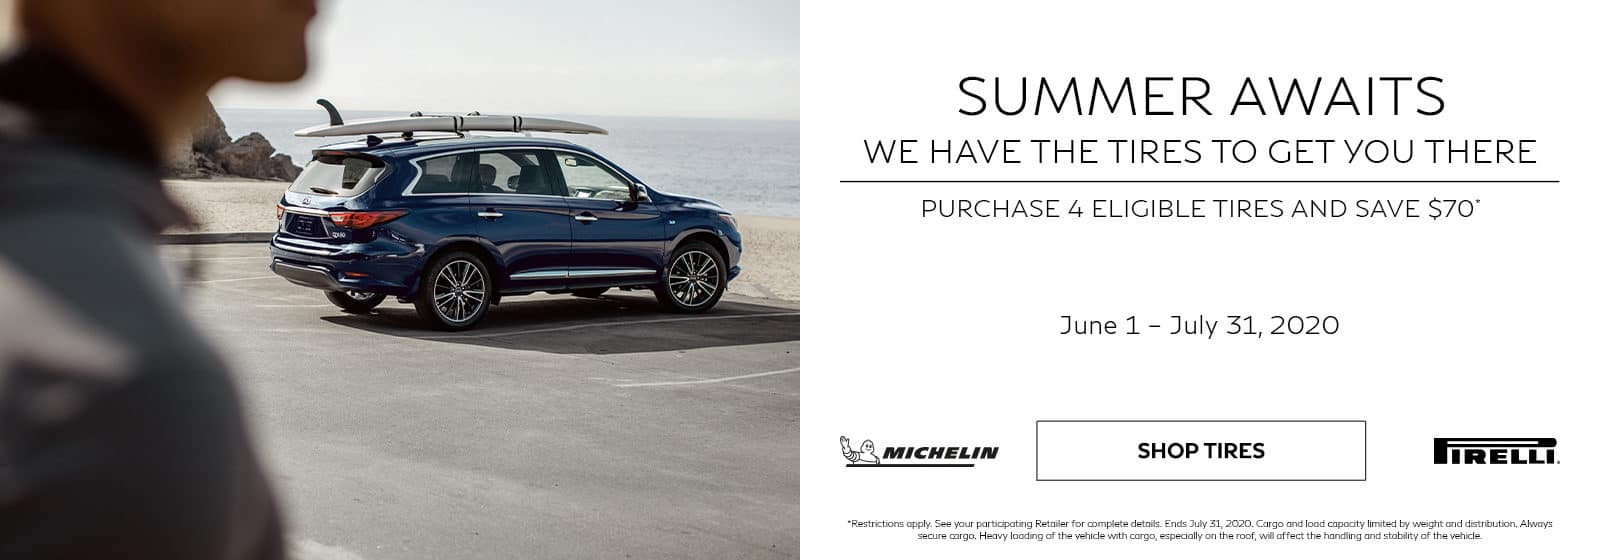 Purchase 4 eligible tires and save $70. See retailer for complete details. Offer ends 7/31/2020.